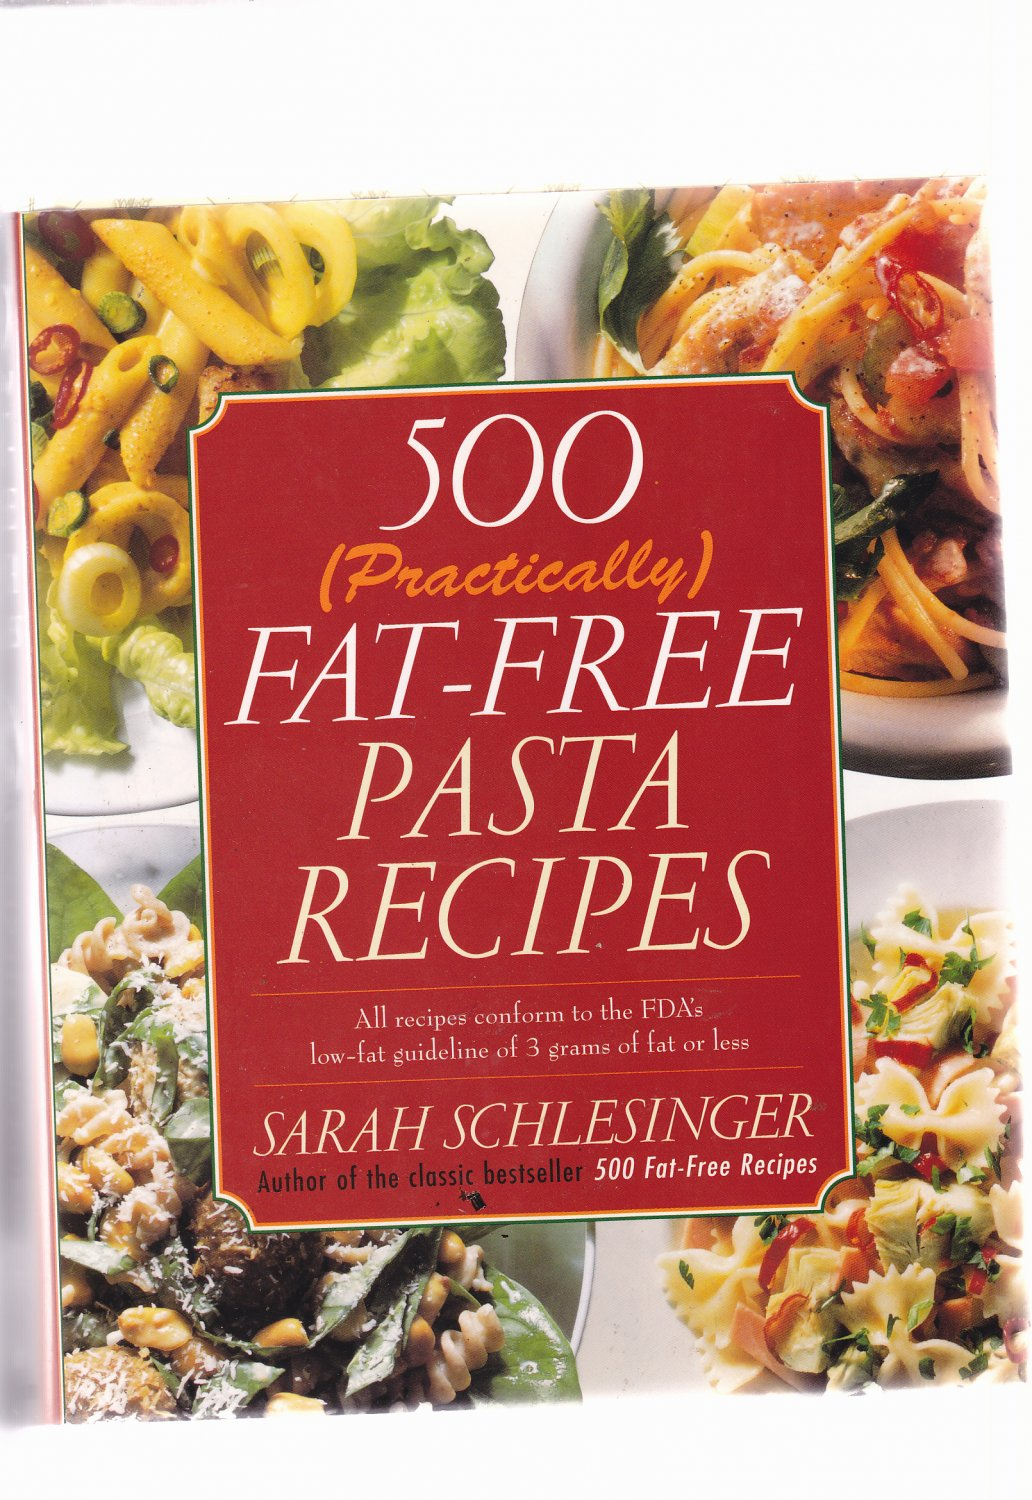 500 Fat-Free Pasta Recipes by Schlesinger, Sarah 1996 Hardcover Book - Very Good